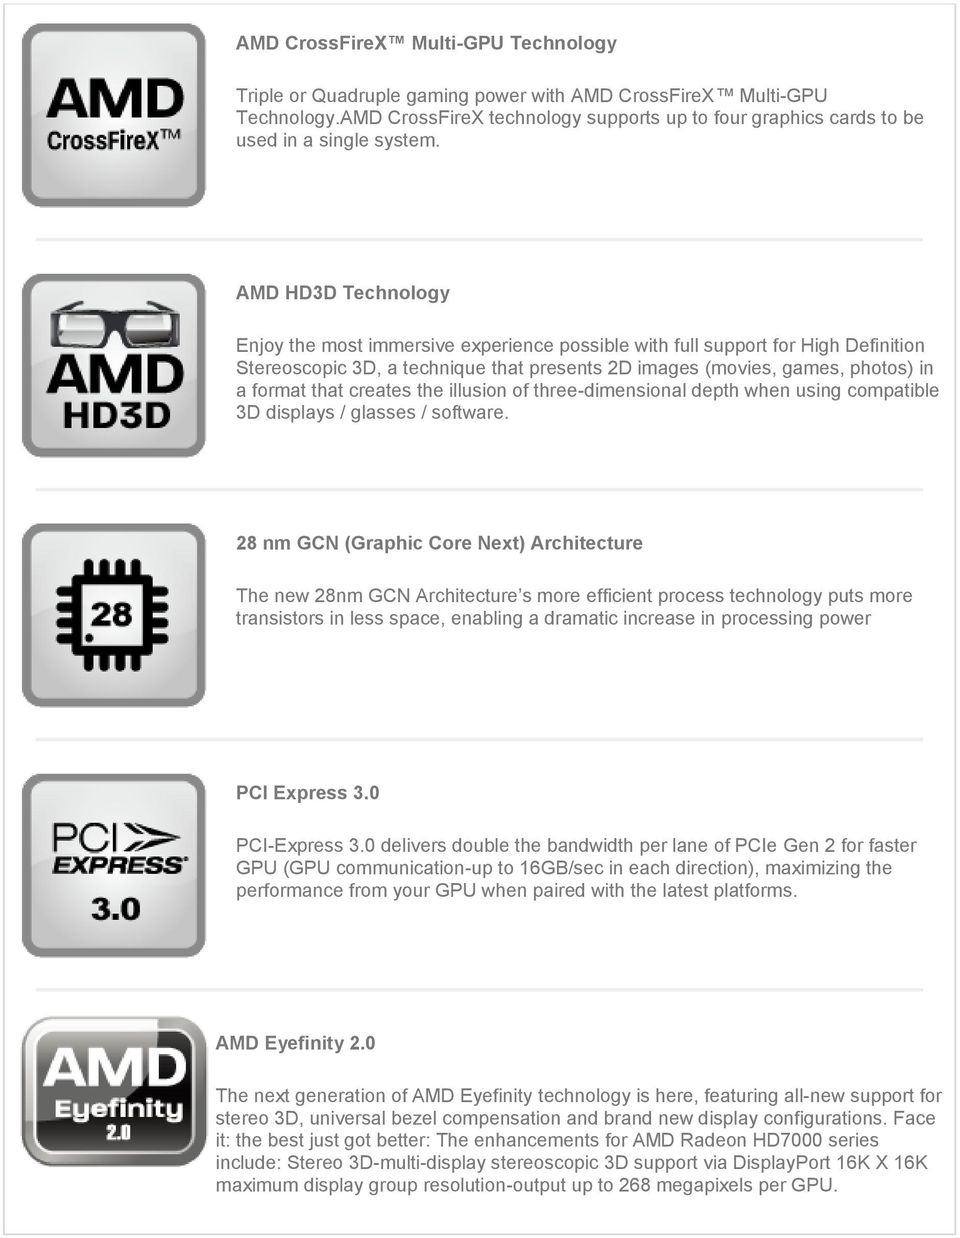 AMD HD3D Technology Enjoy the most immersive experience possible with full support for High Definition Stereoscopic 3D, a technique that presents 2D images (movies, games, photos) in a format that